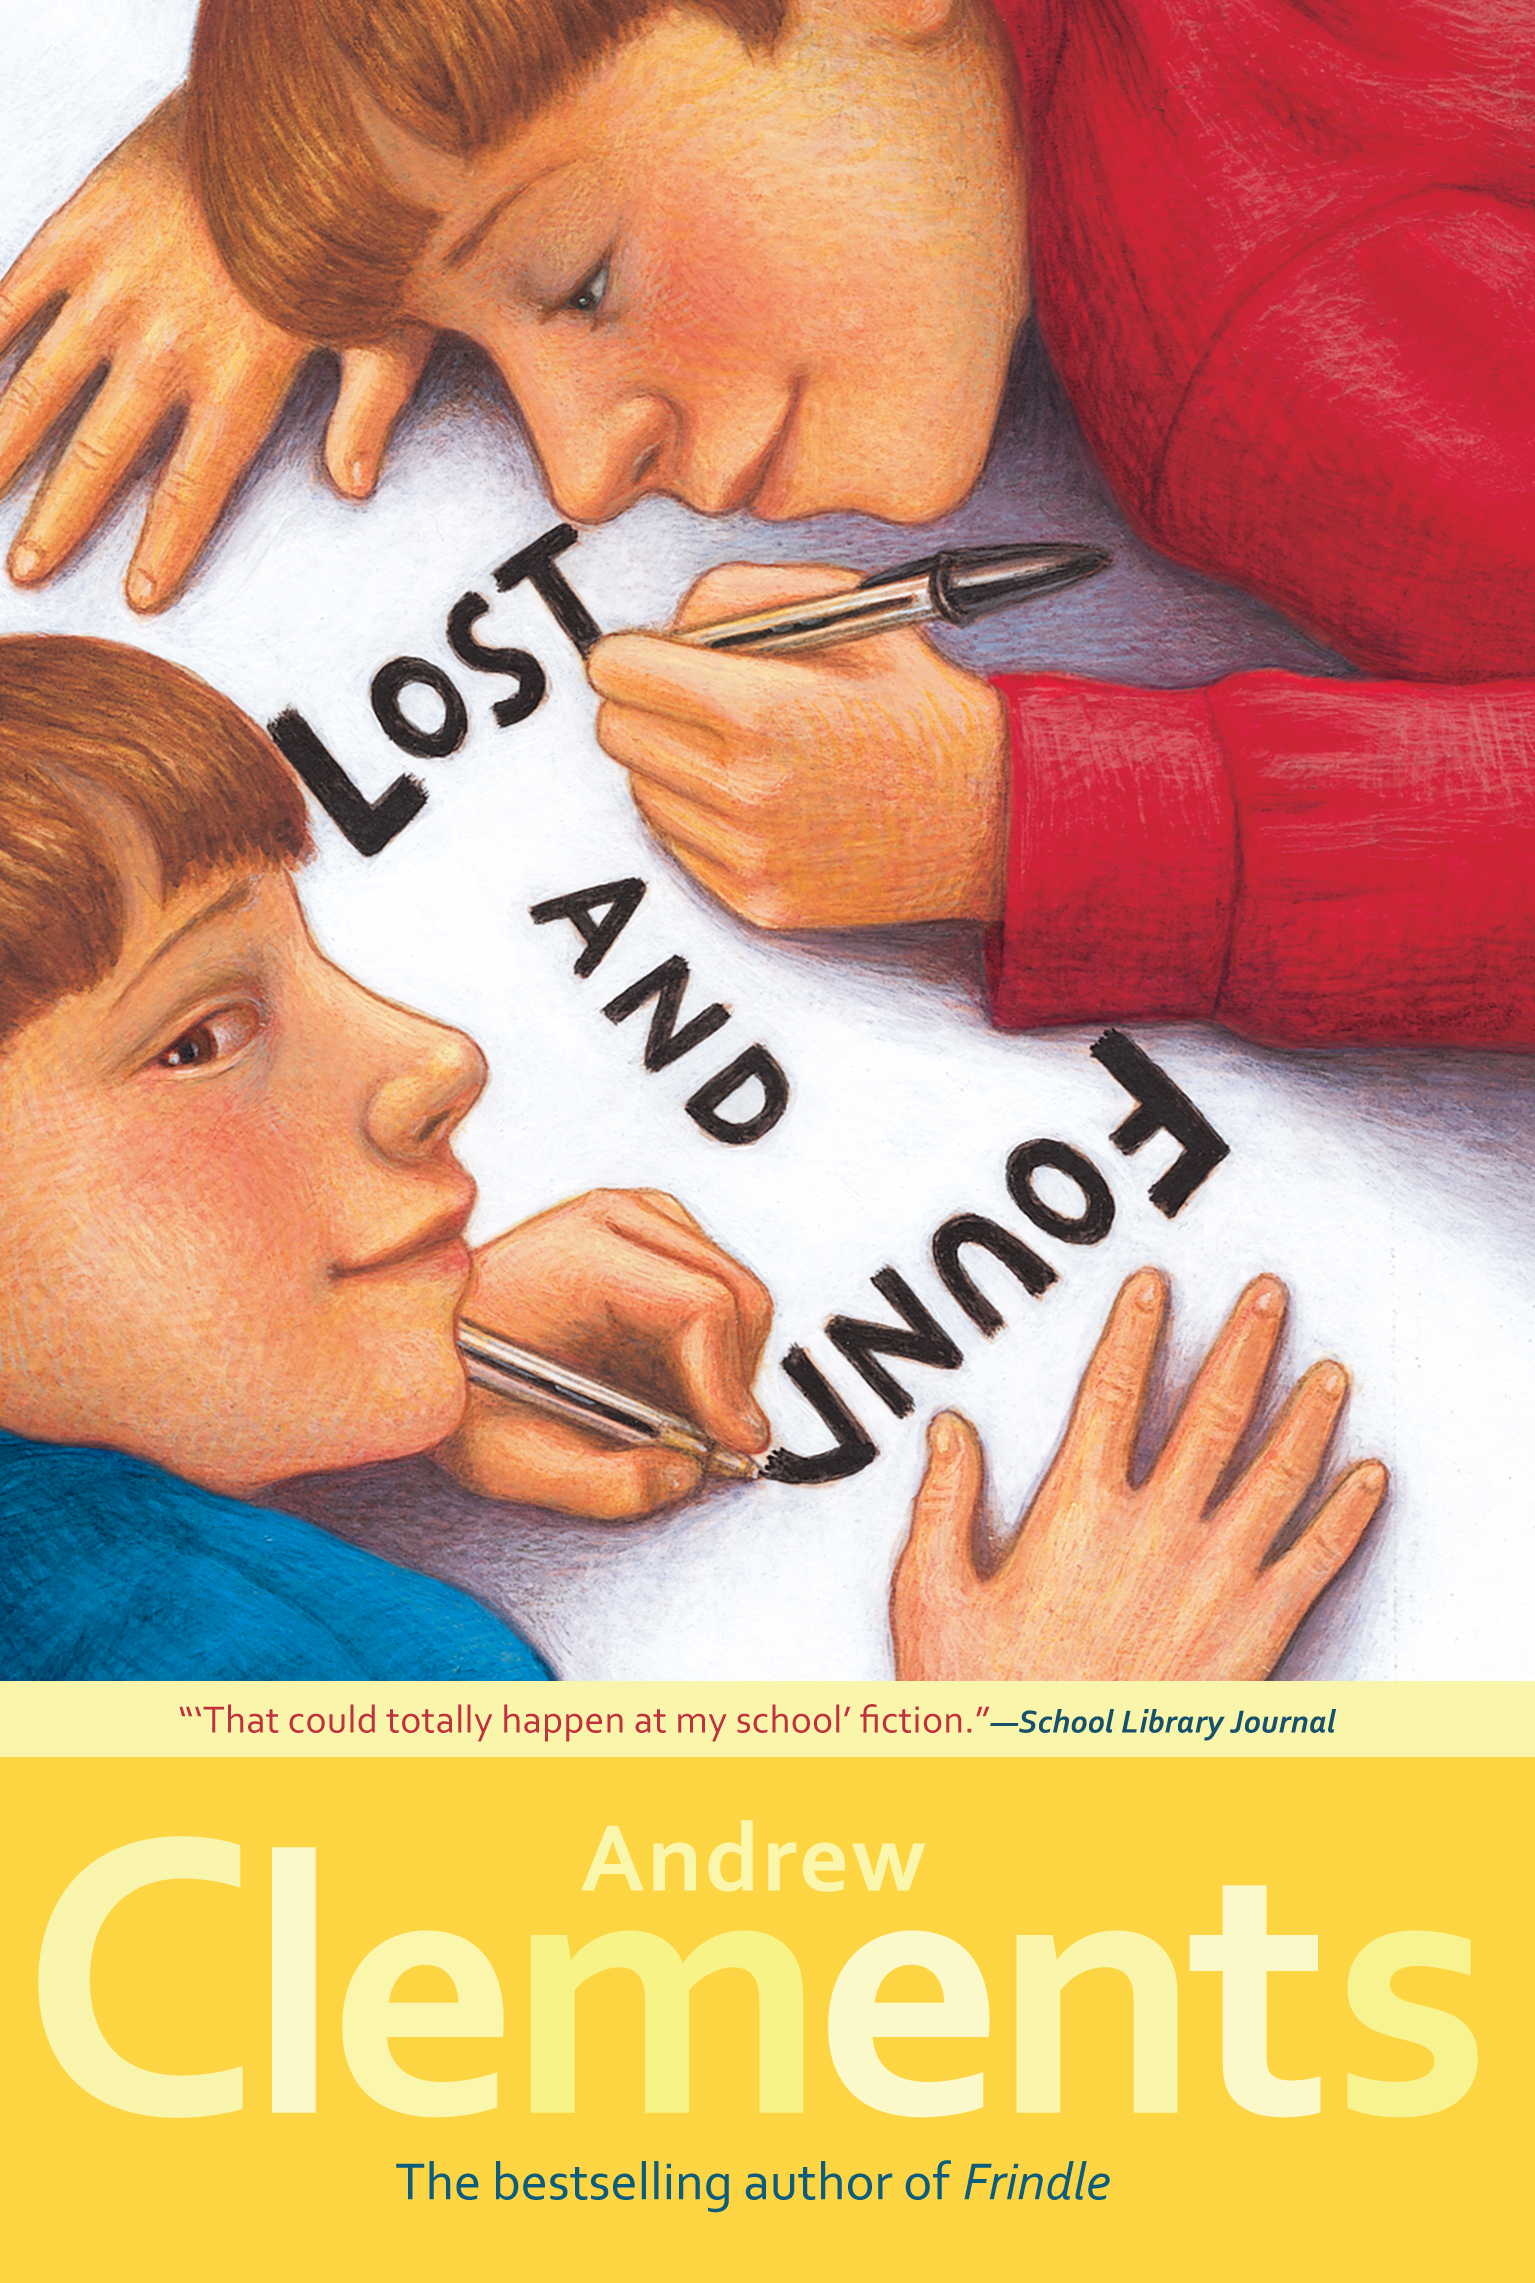 Lost and found book by andrew clements mark elliott official cvr9781416909866 9781416909866 hr publicscrutiny Gallery